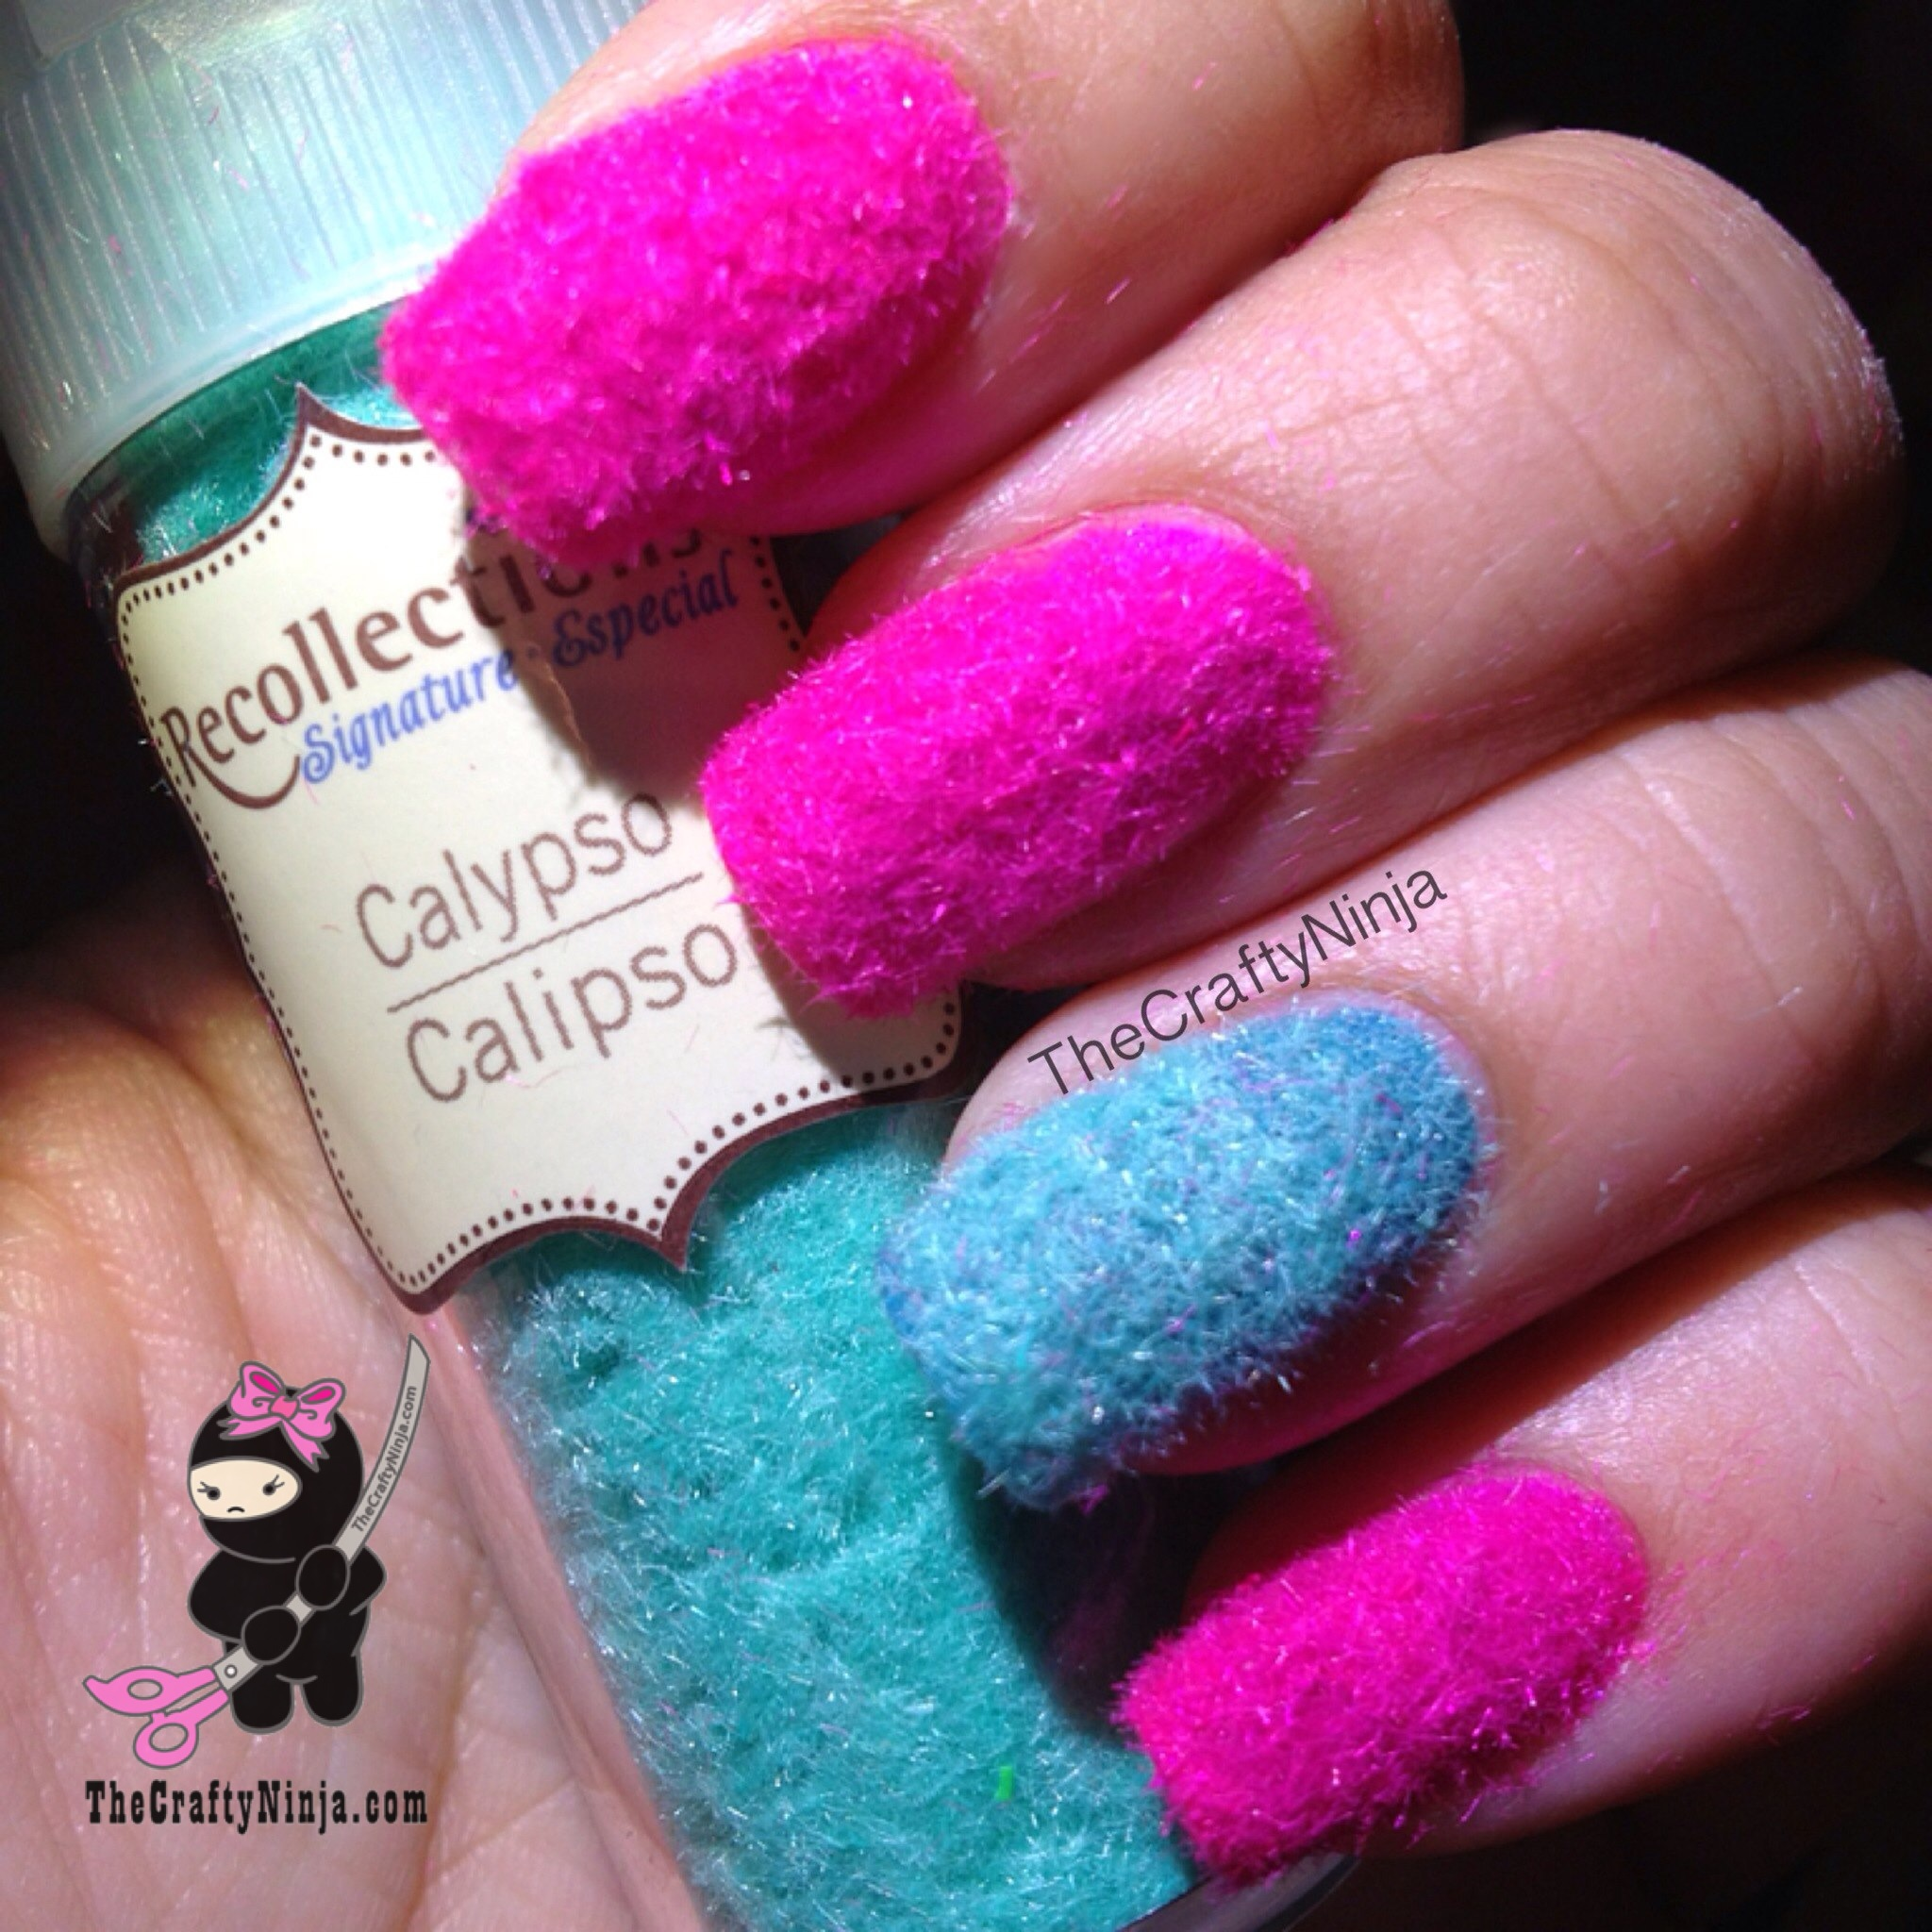 Velvet Flocking Nails | The Crafty Ninja